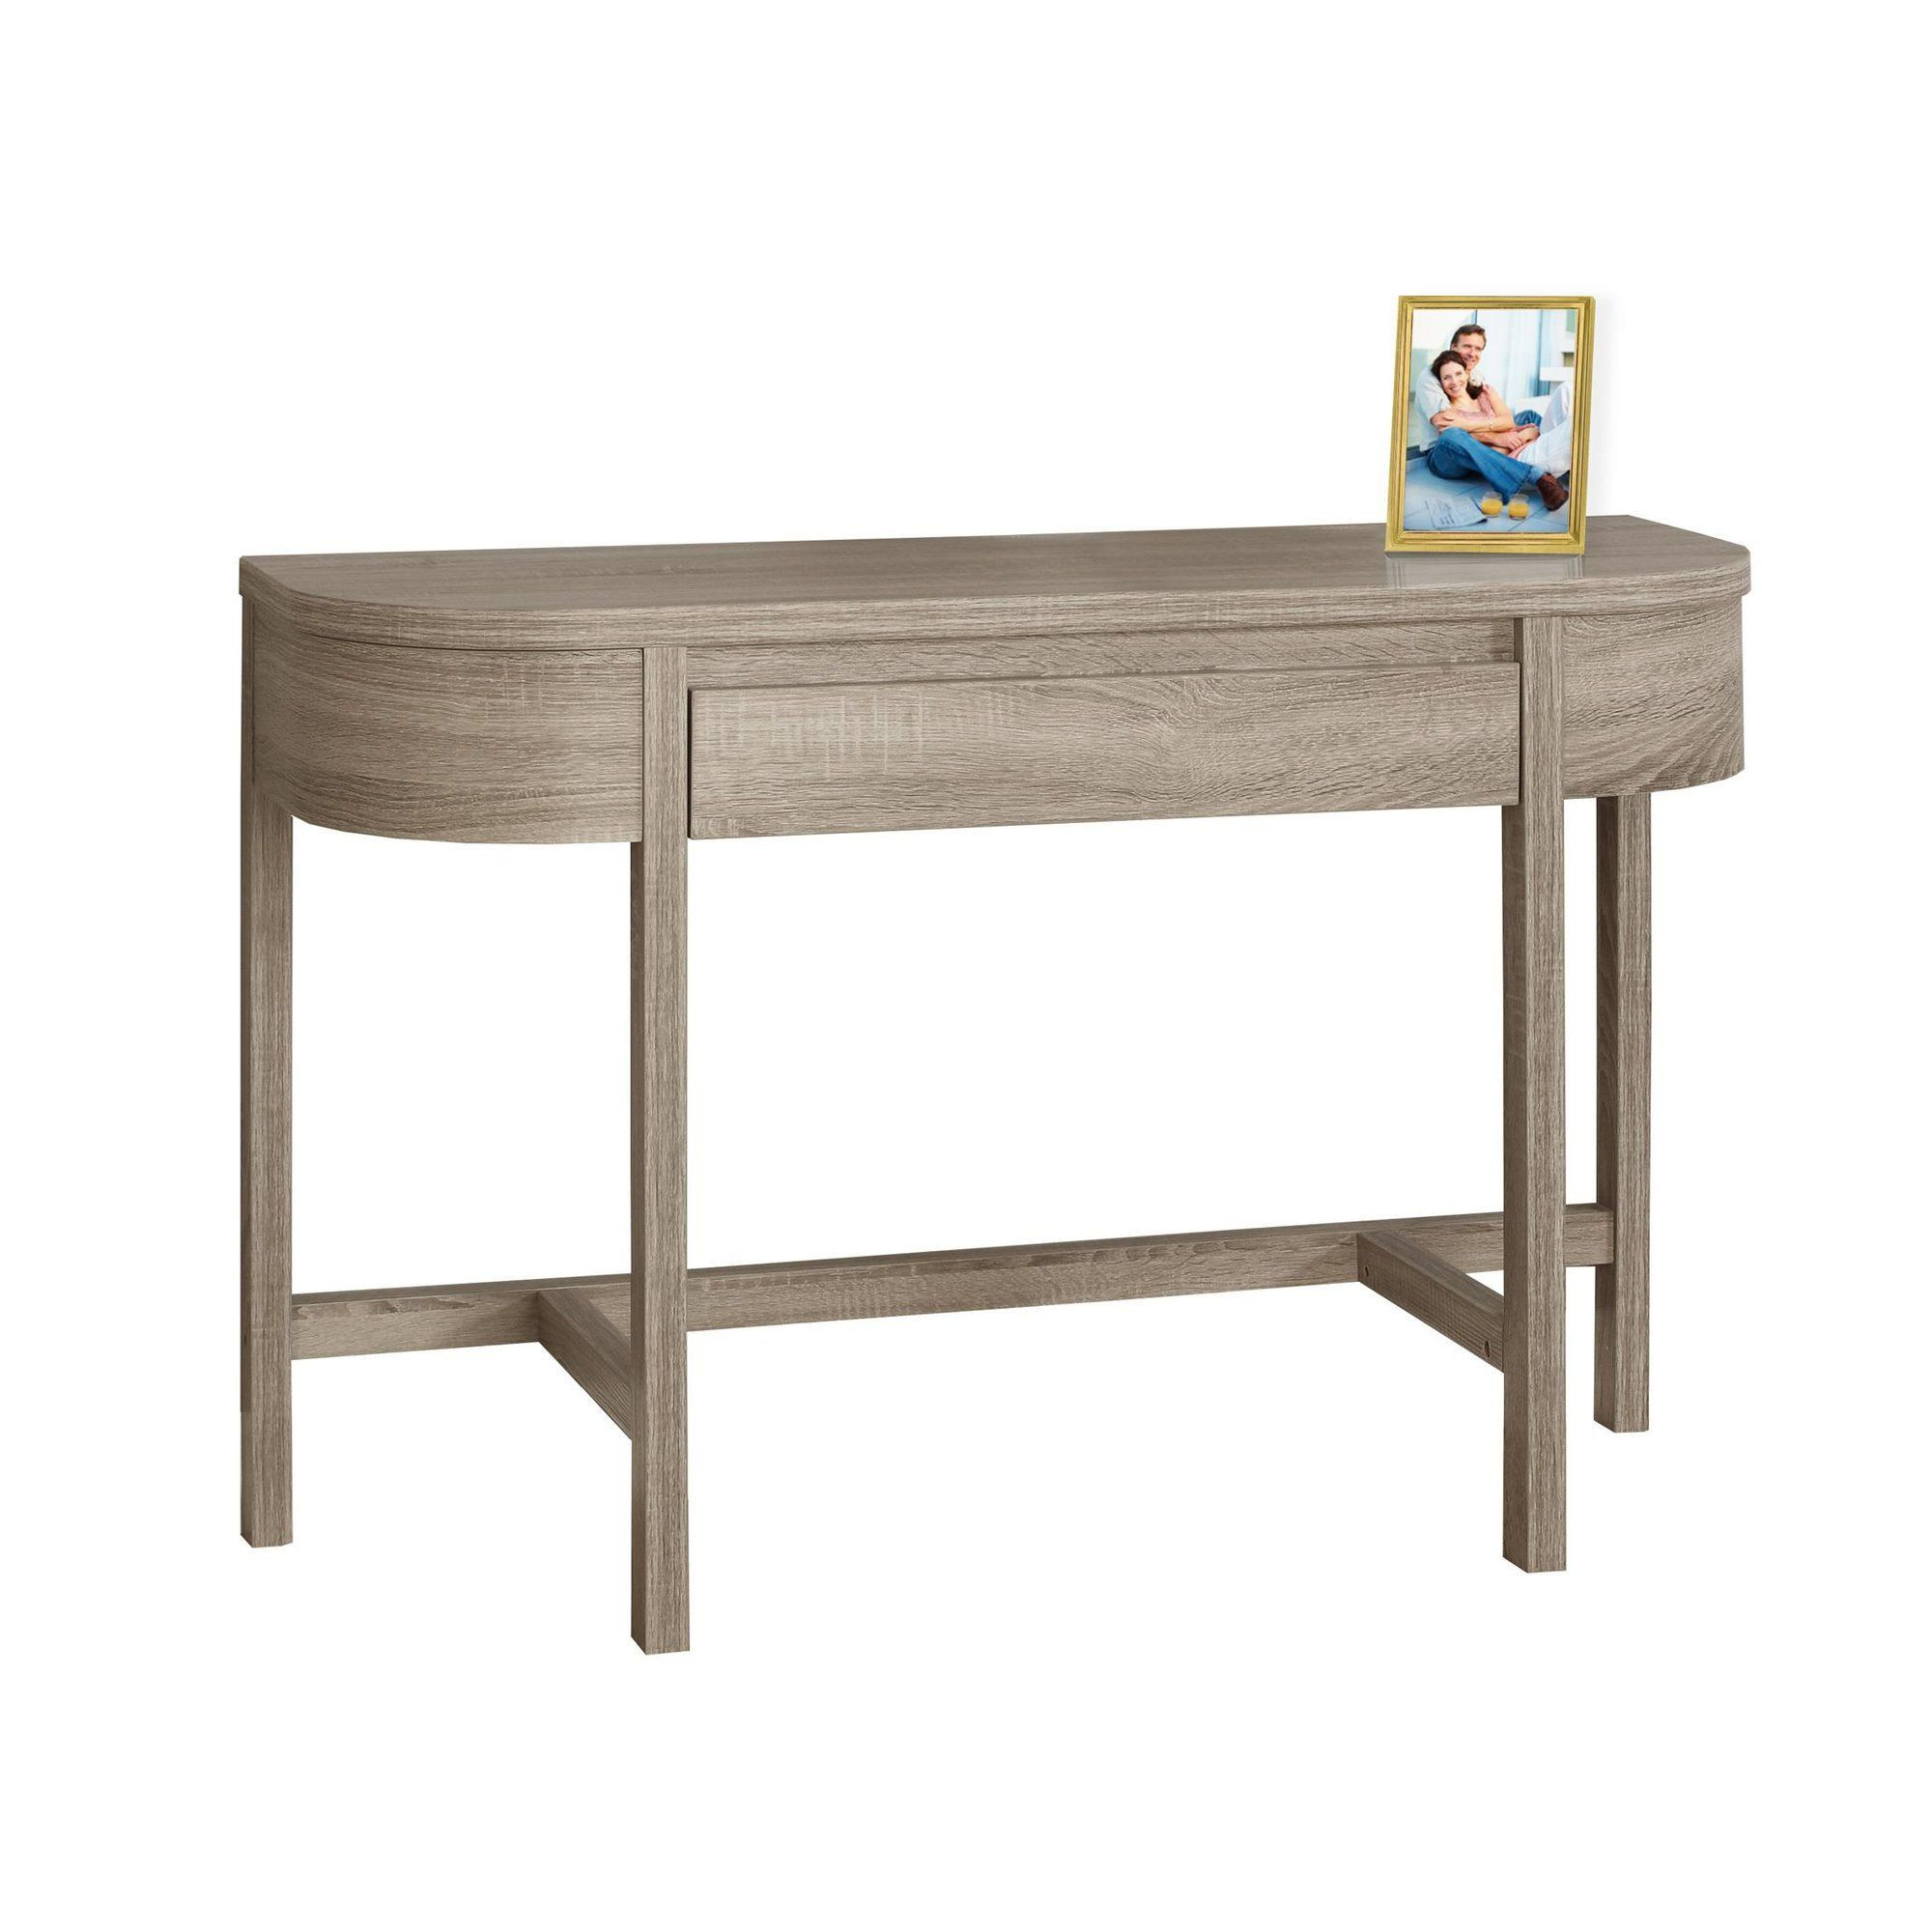 accent table dark taupe with storage drawer products monarch hall console and drawers small round metal outdoor live edge coffee marble kitchen plant pedestal chrome lamp bar west